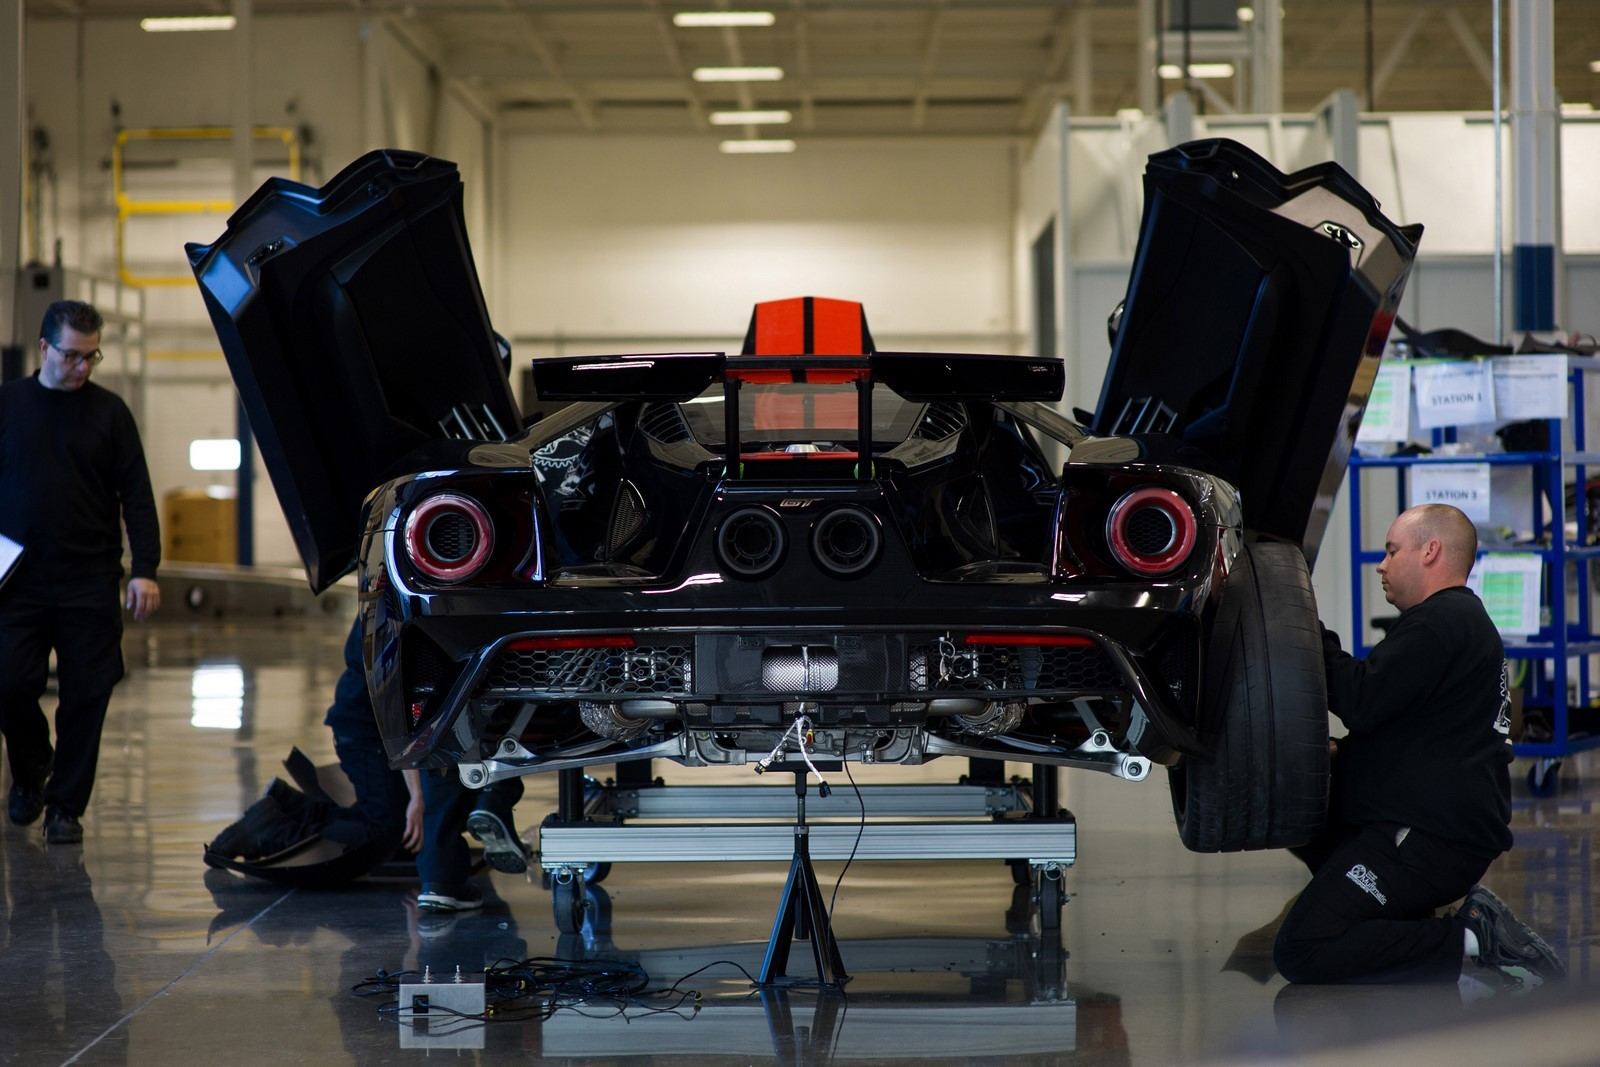 MARKHAM, Ontario, Canada, Dec. 16, 2016--The all-new Ford GT is entering the final phase of development and production has begun. One of the first Ford GTs is being driven off the line at the Multimatic assembly location with the first behind the scenes look at the assembly line for all-new Ford GT. The Ford GT is the culmination of years of Ford innovation in aerodynamics, lightweight carbon fiber construction and ultra-efficient EcoBoost engines. Pictured: Anthony Benincasa (left) and Adam Thorndyke. Photo by: Nick Busato